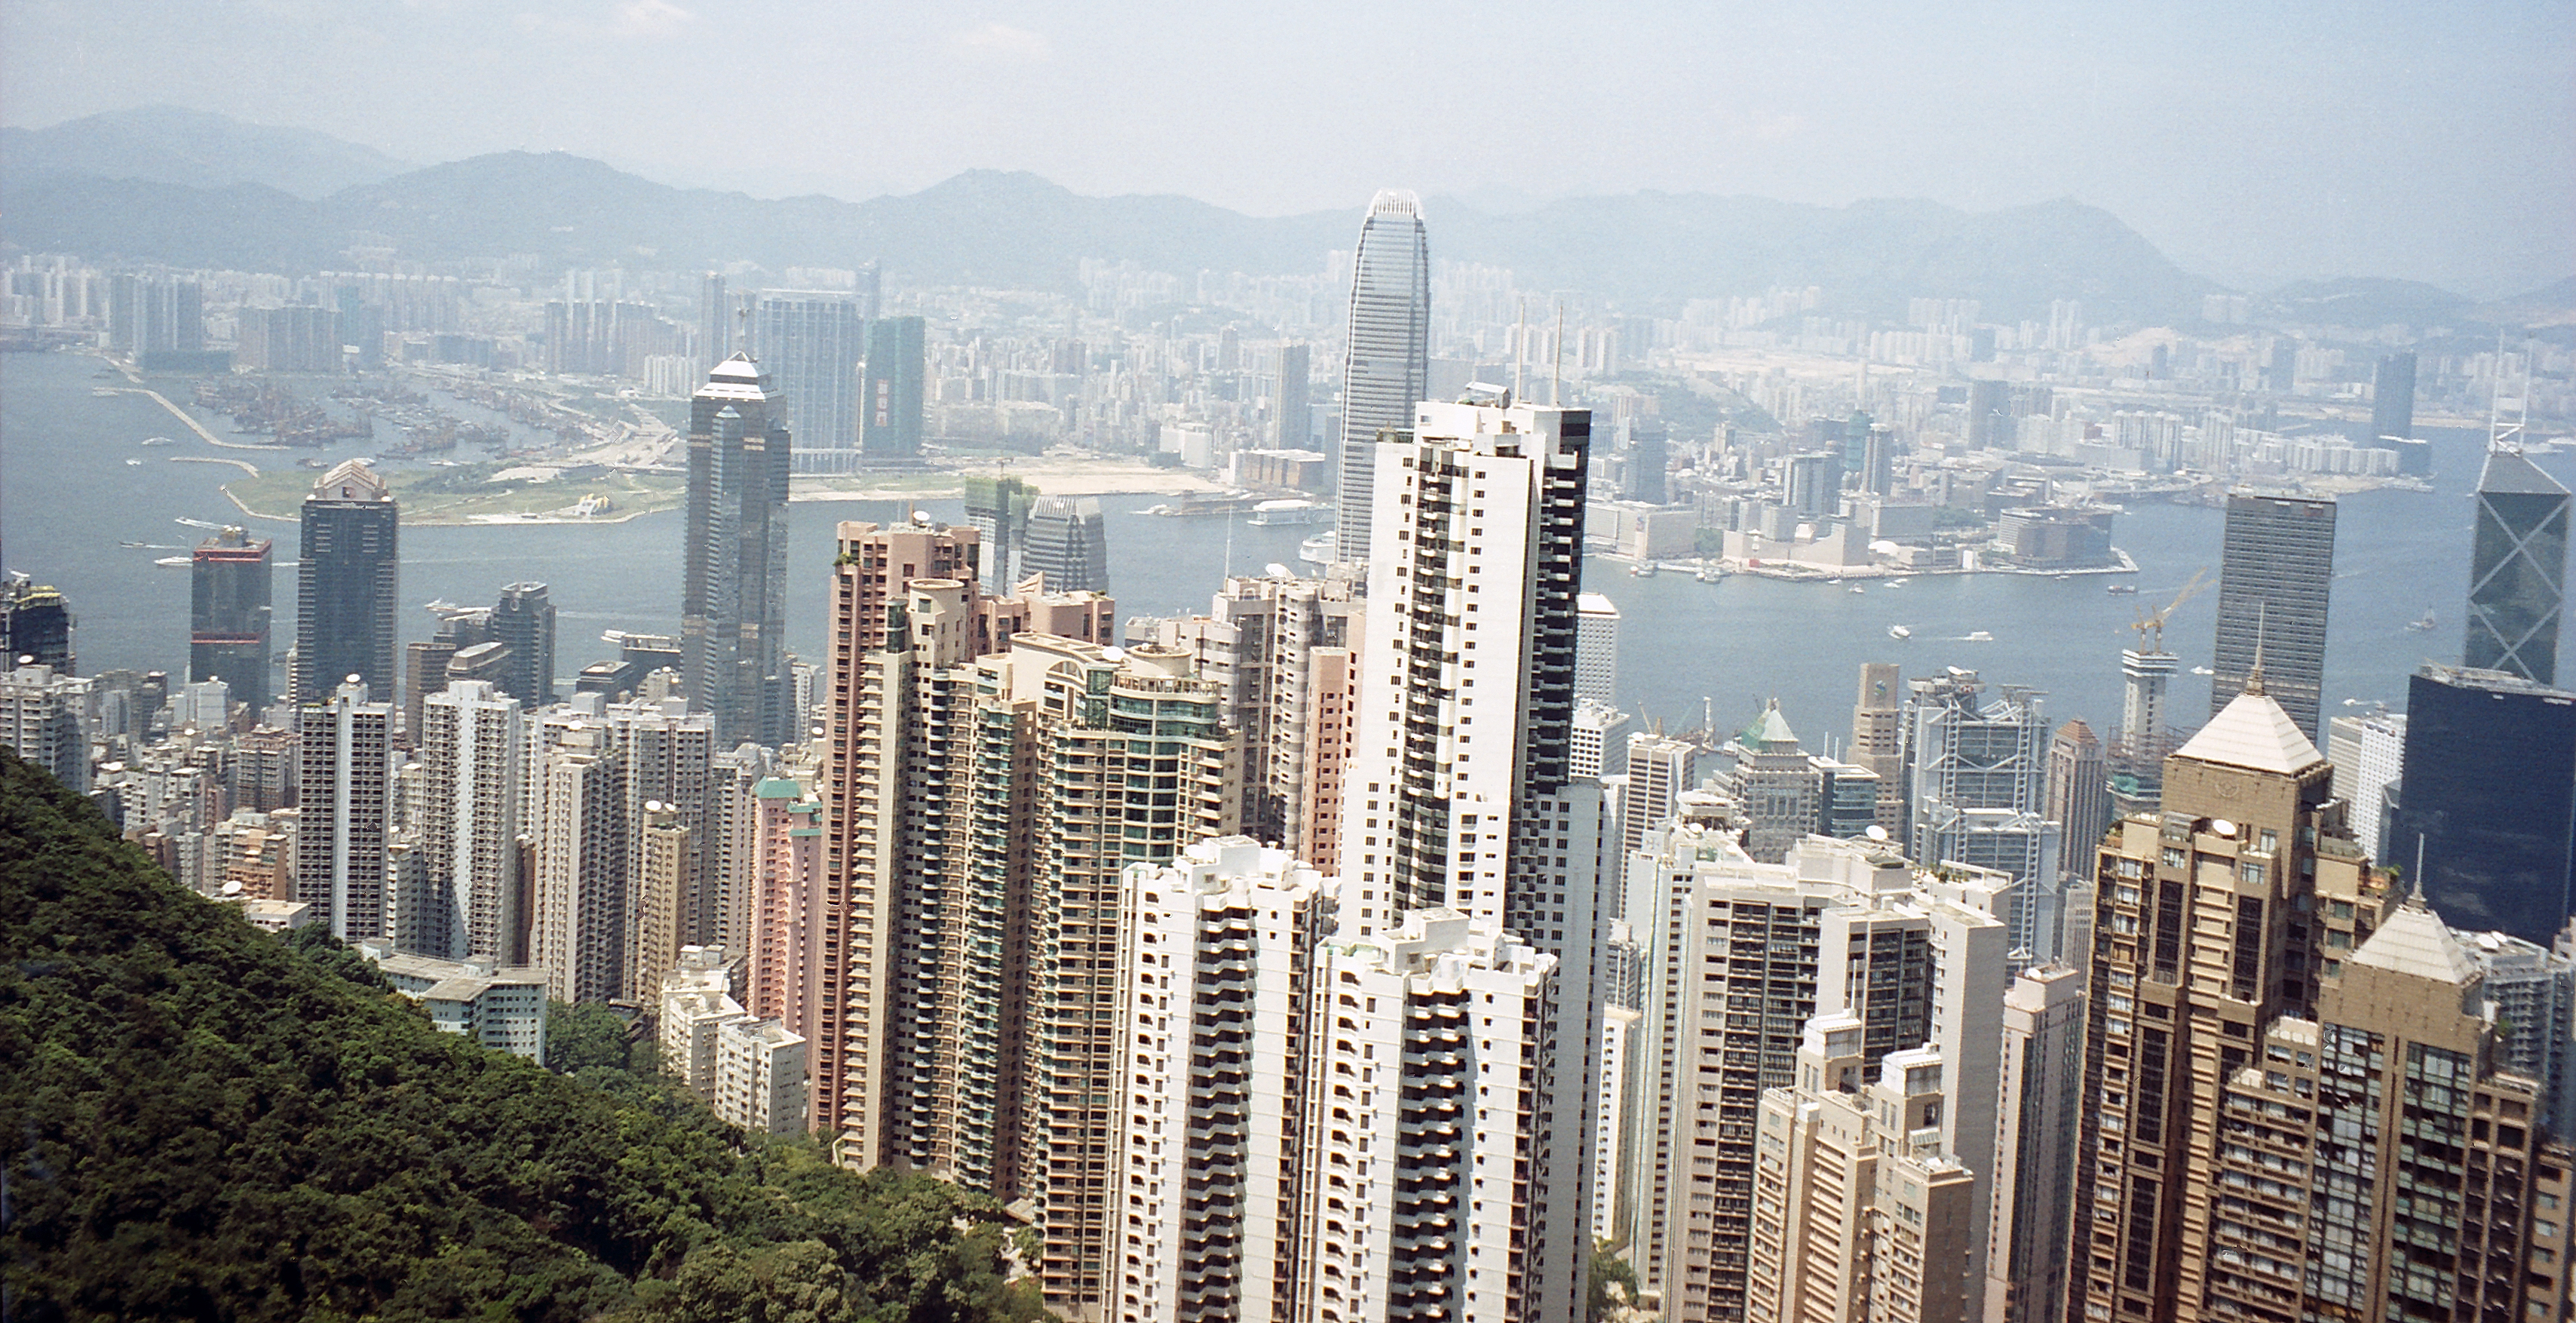 skyscrapers, Hong Kong China 2.jpg